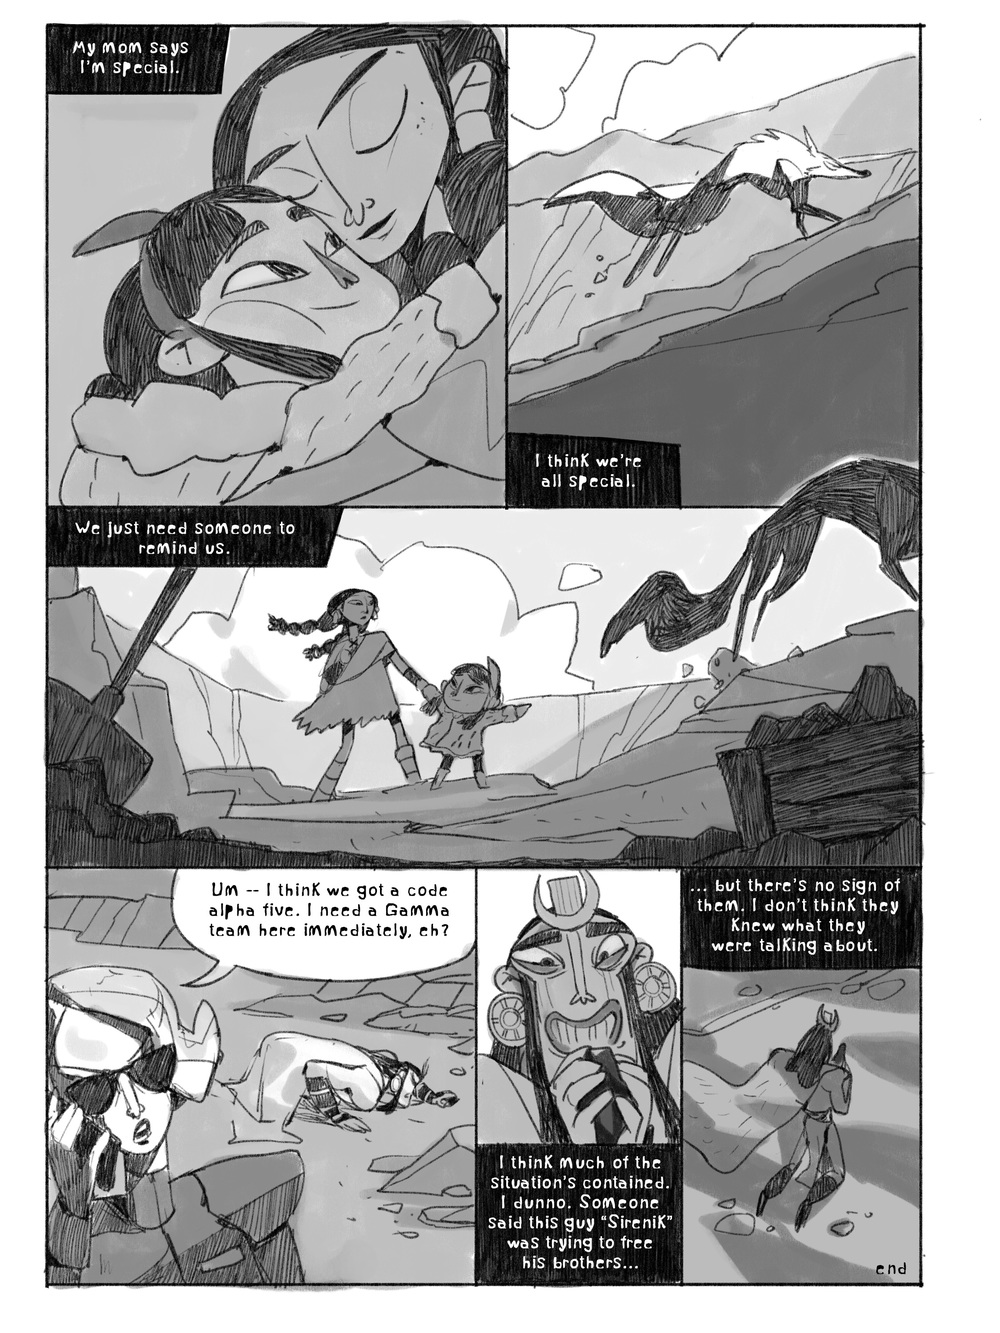 Sticks&Stones_Page13_final.jpg